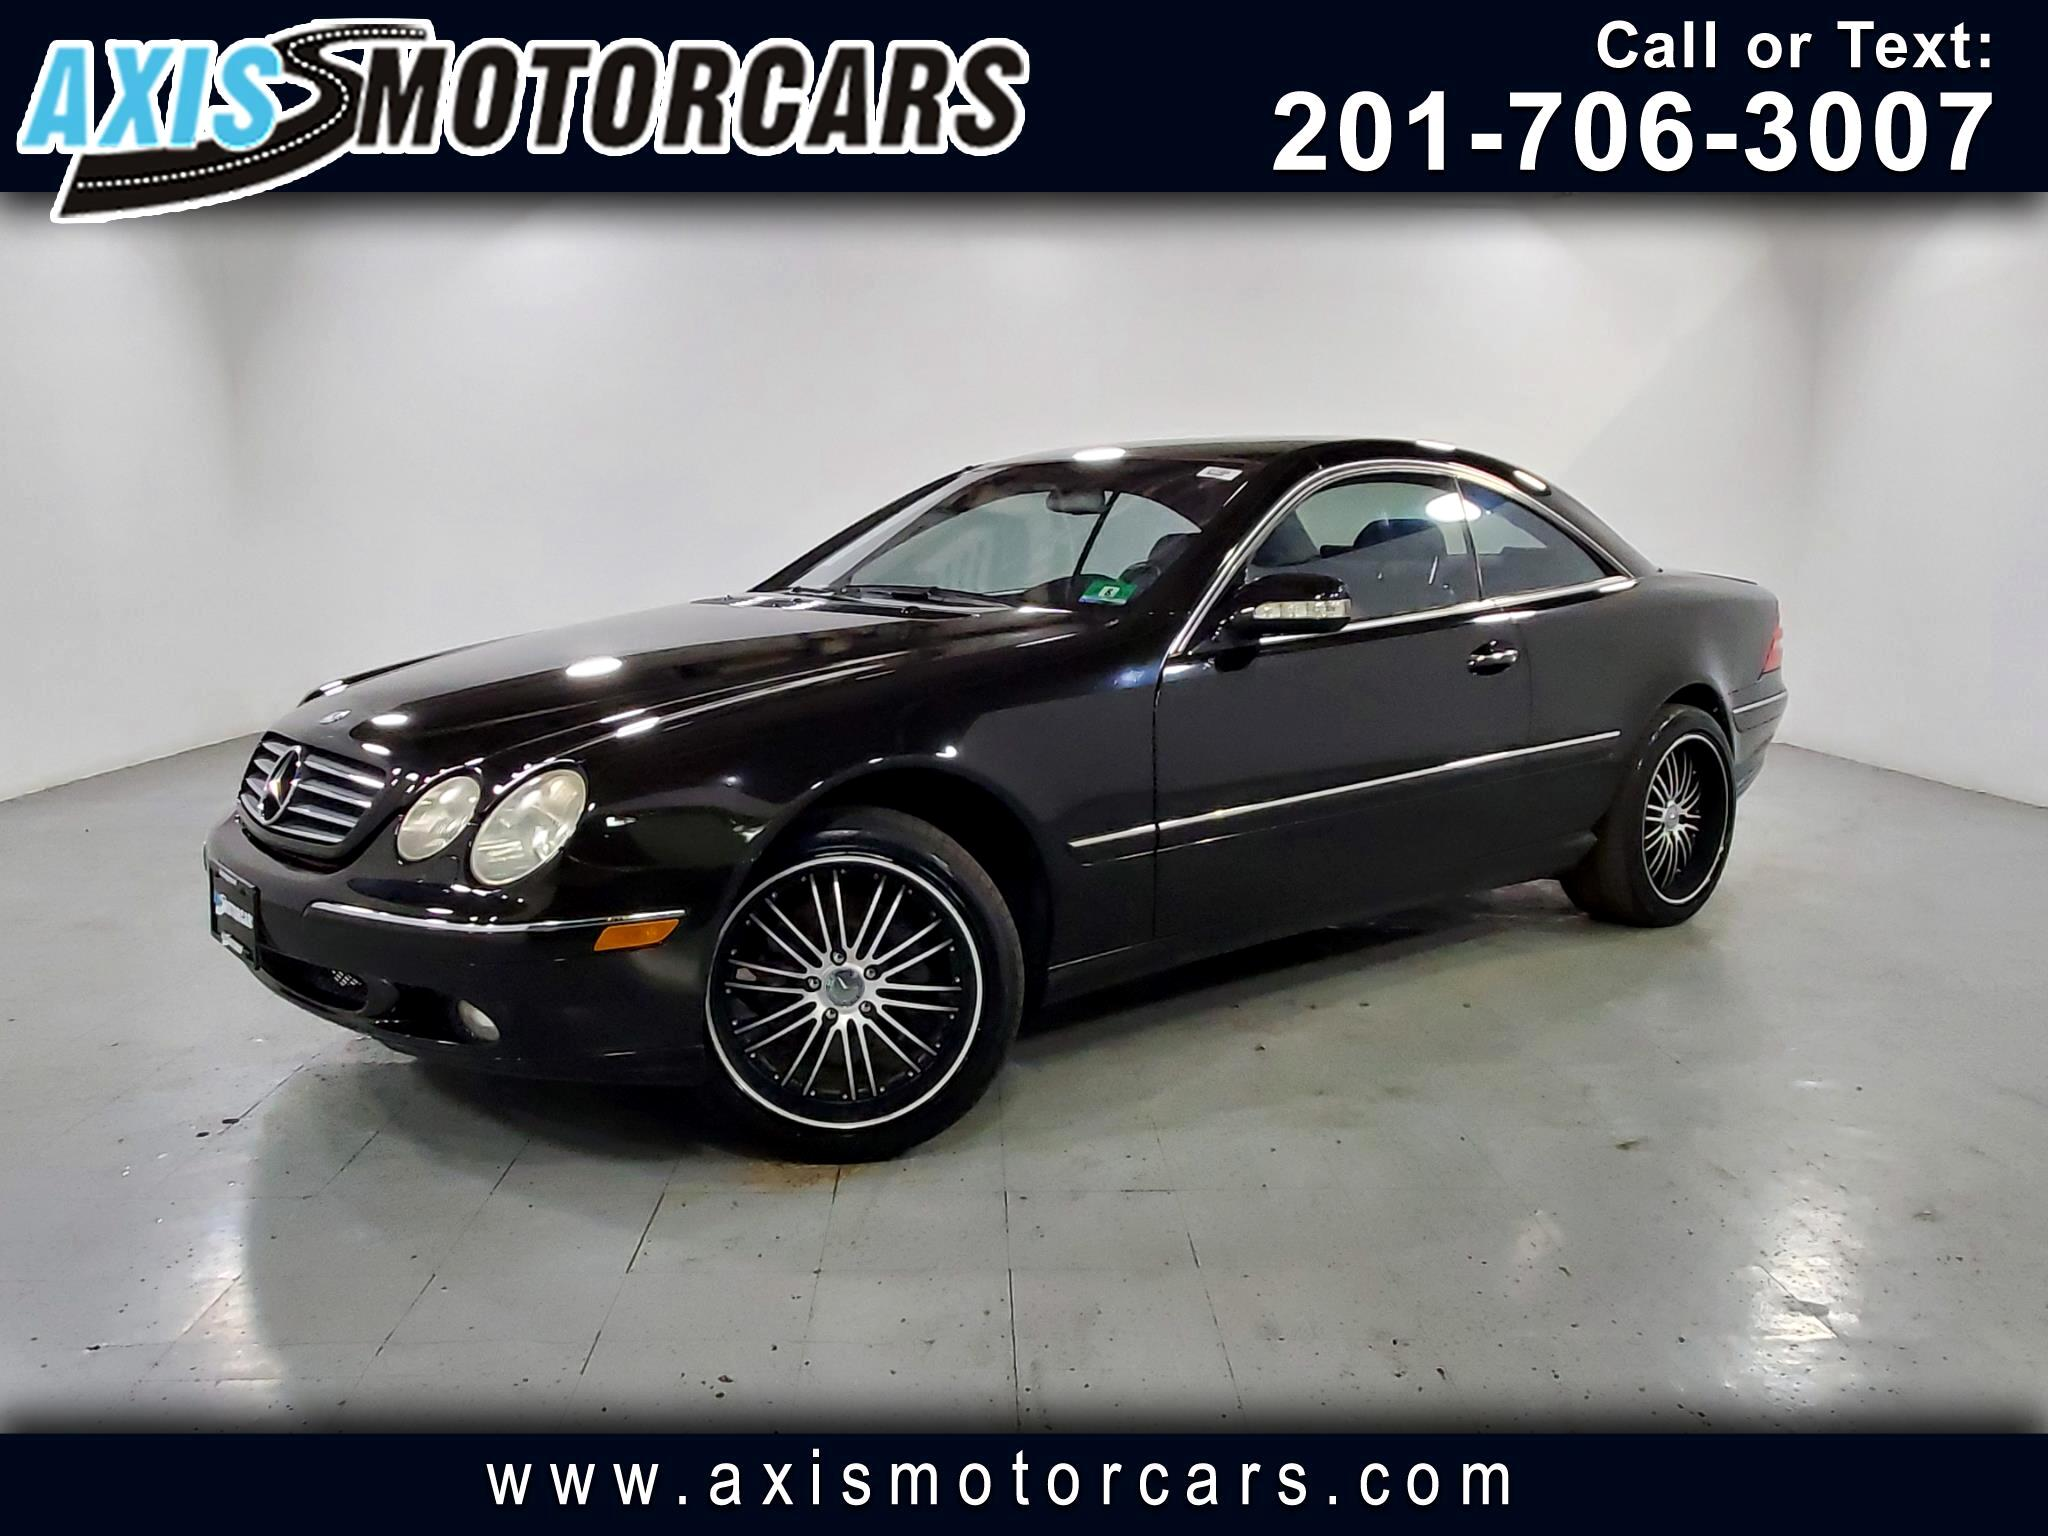 2001 Mercedes-Benz CL-Class CL500 Cpe w/Sunroof Leather